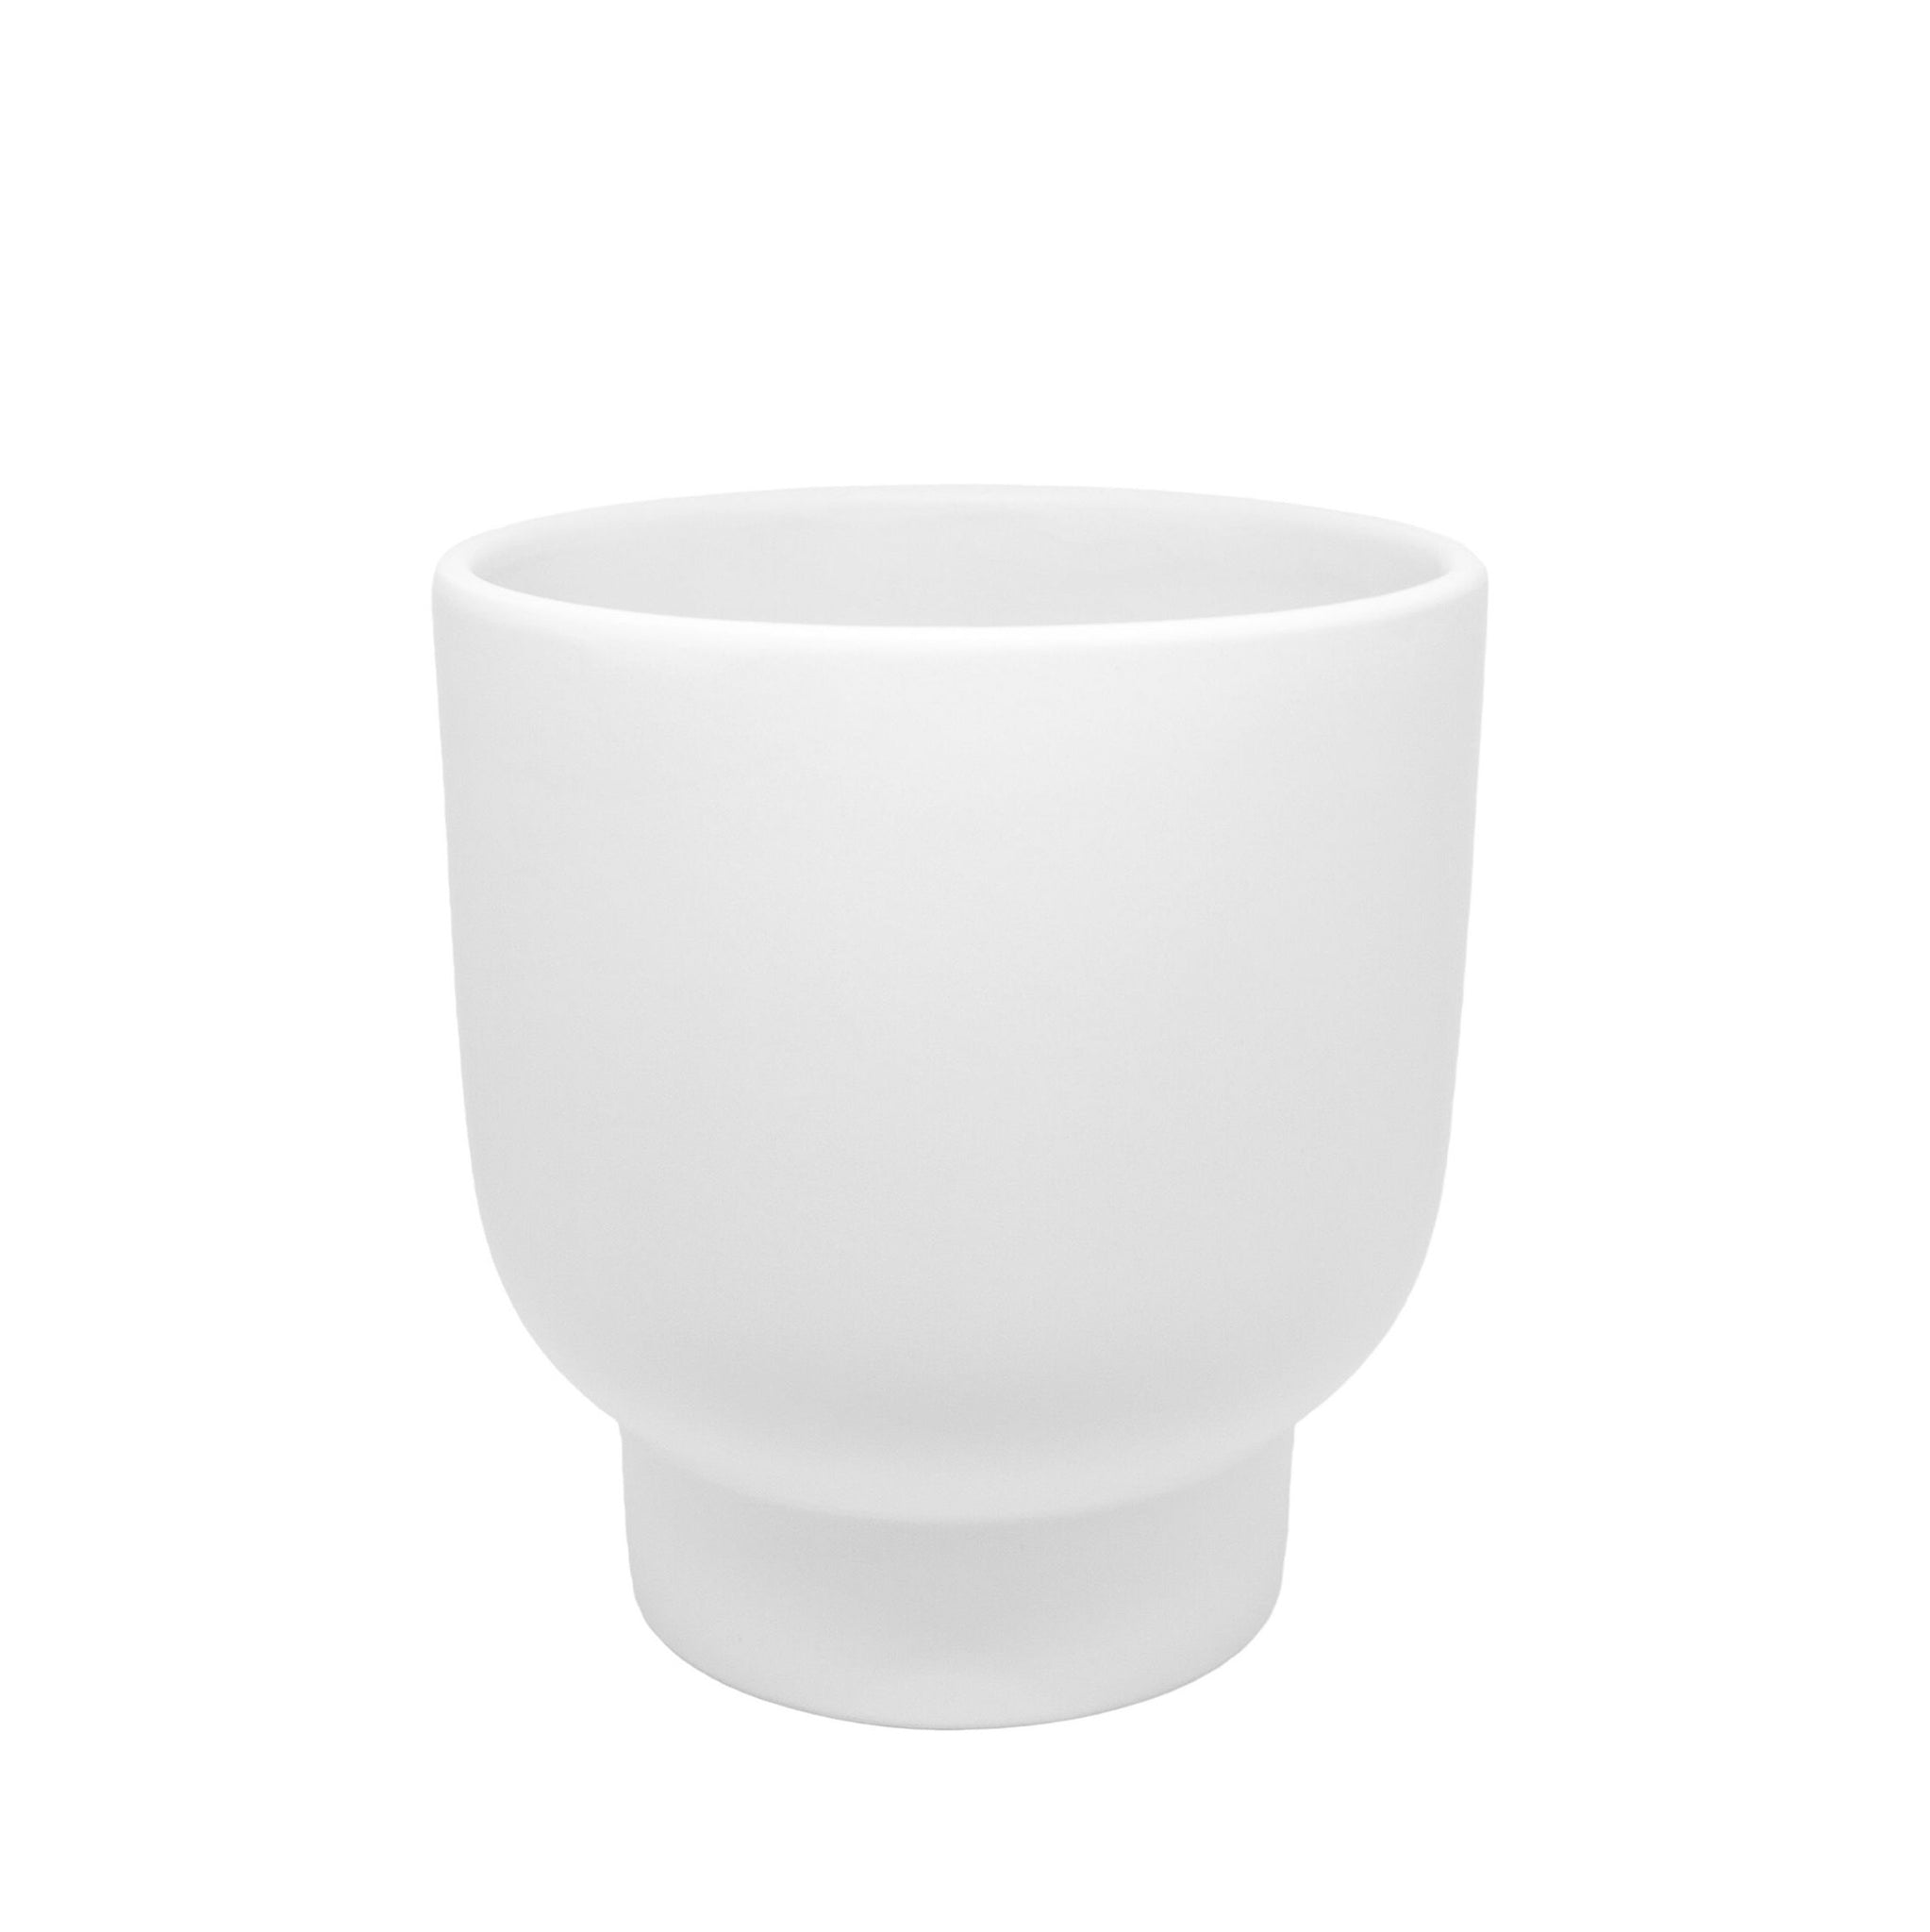 General Eclectic Stockholm Planter White - Medium